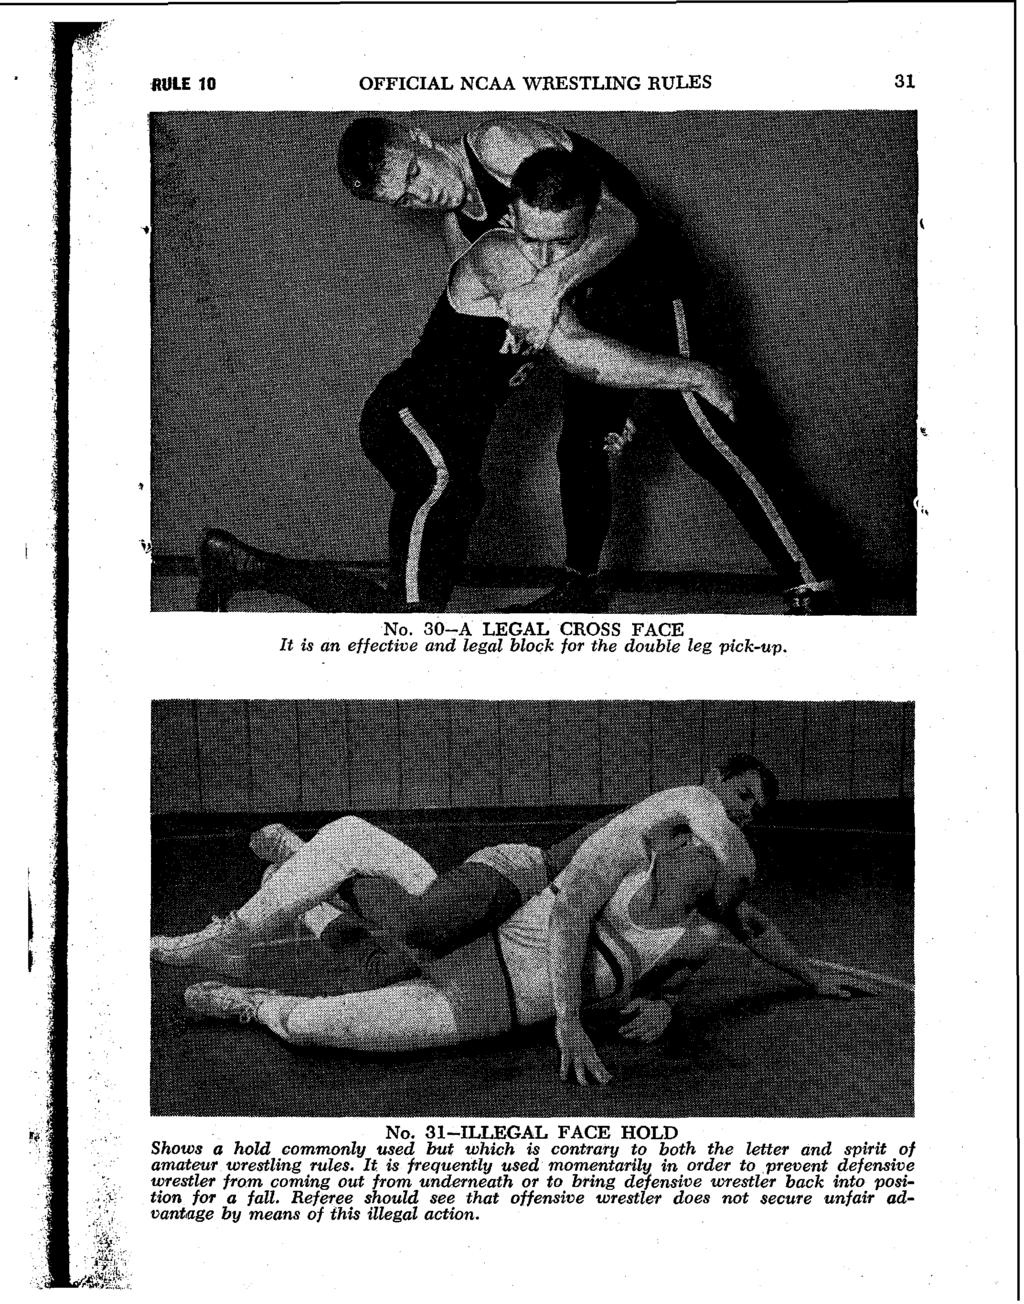 aule 10 OFFICIAL NCAA WRESTLING RULES 3 1 NO. 30-A LEGAL CROSS FACE It is an effectzve and legal block for the double leg pick-up. NO. 31-ILLEGAL FACE HOLD Shows a hold commonly used but which is contrary to both the letter and spirit of amateur wrestling rules.